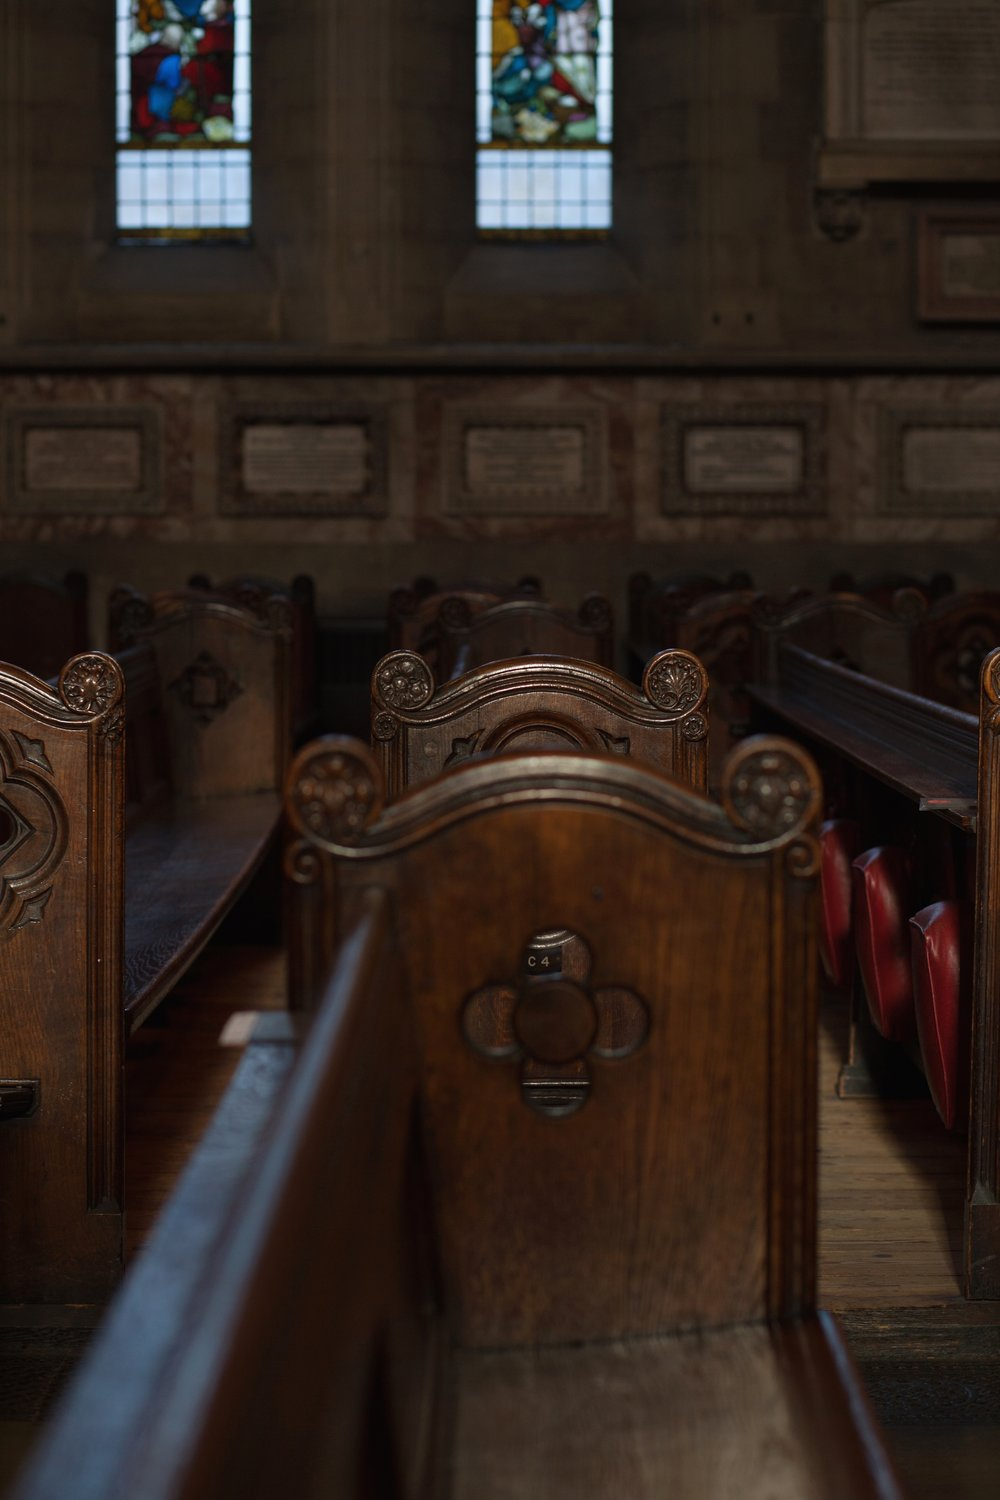 St. Mary's Pew